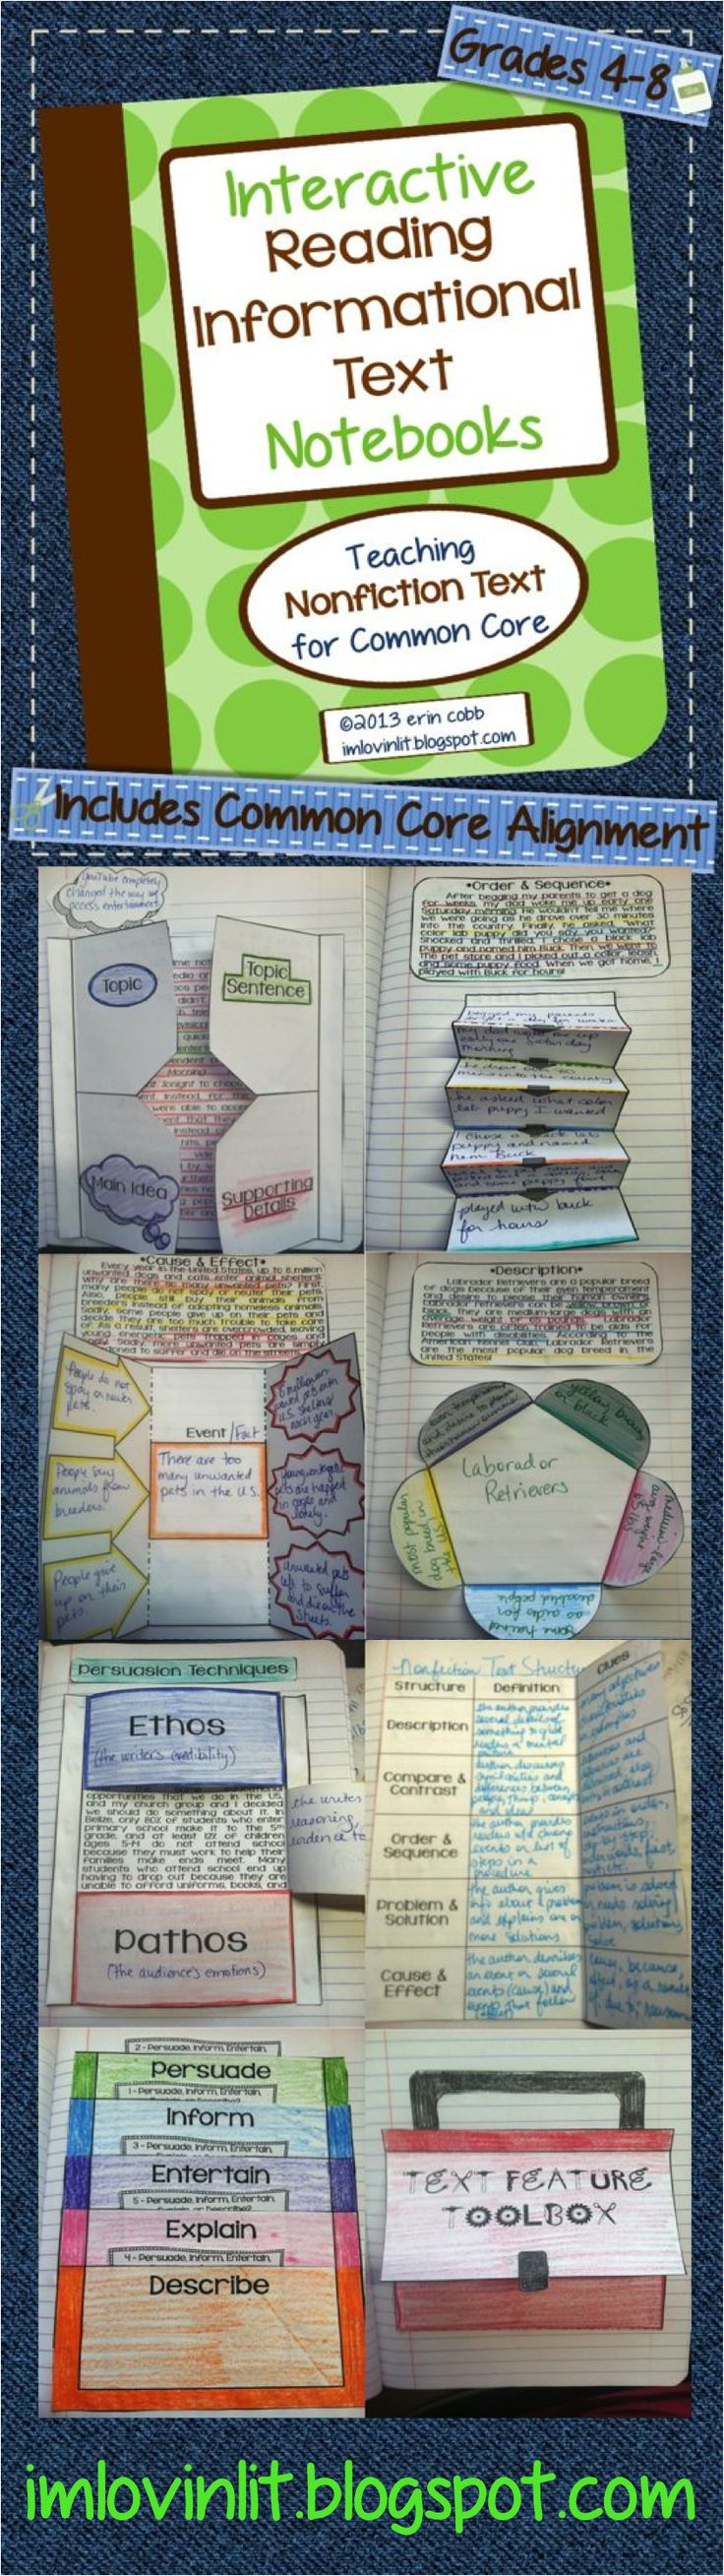 Grades 4-8. Interactive Reading Notebooks: Informational Text  ~ Teaching Nonfiction Strategies for Common Core. Some topics: main idea, outlining nonfiction, summarizing, author's purpose, text structure (description, problem/solution, cause/effect, order/sequence, compare/contrast, persuasion techniques, primary and secondary sources, nonfiction text features. Could adapt for HS.